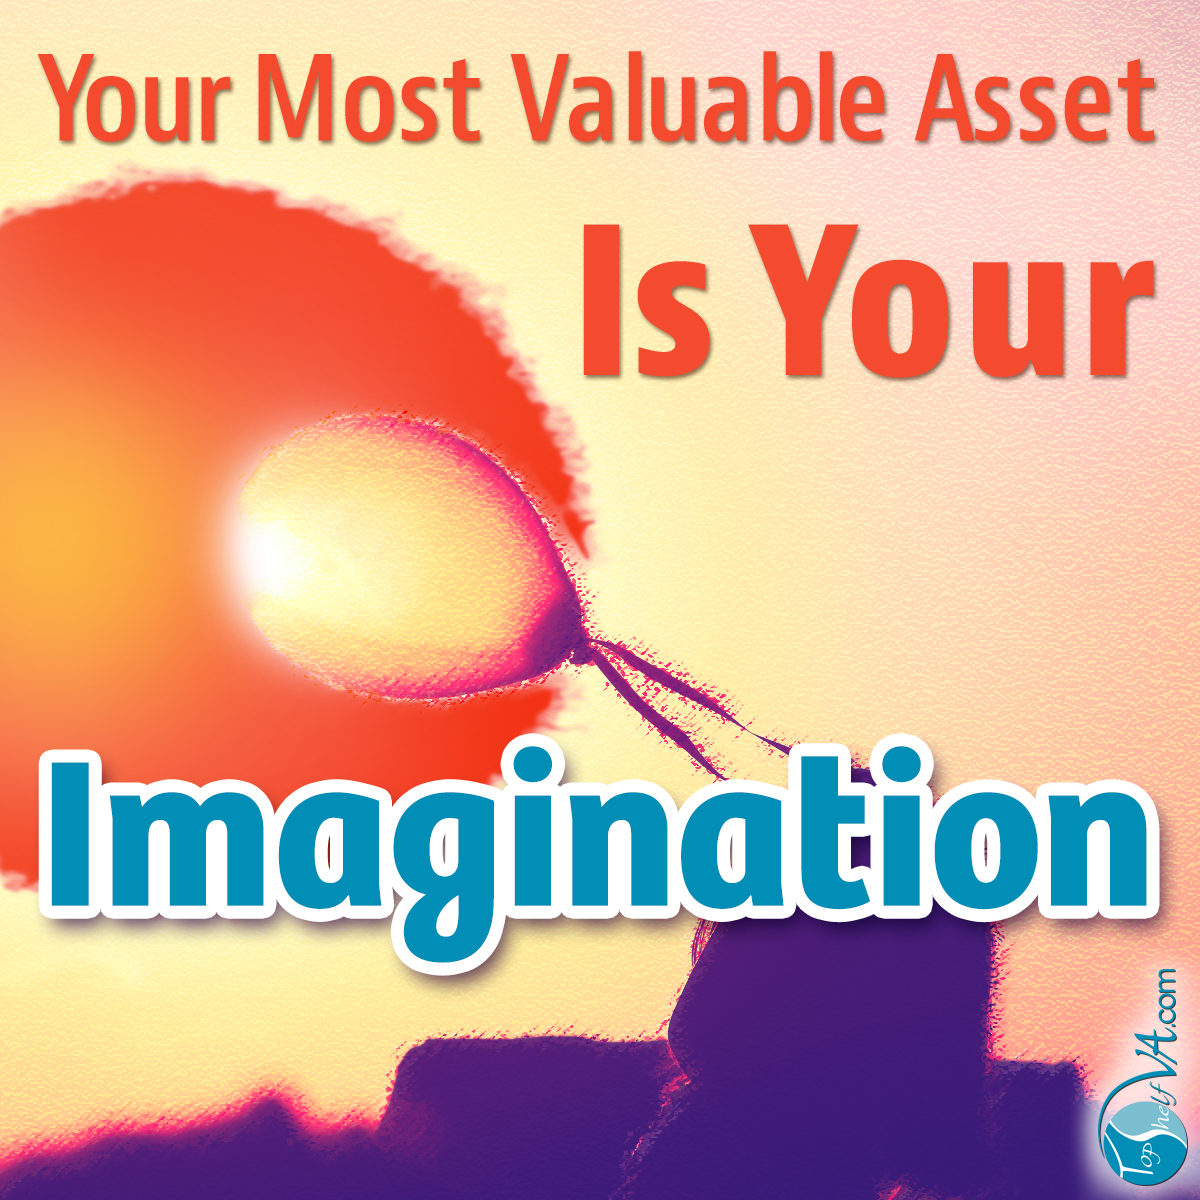 Top Shelf VA Services: Your Most Valuable Asset Is Your Imagination